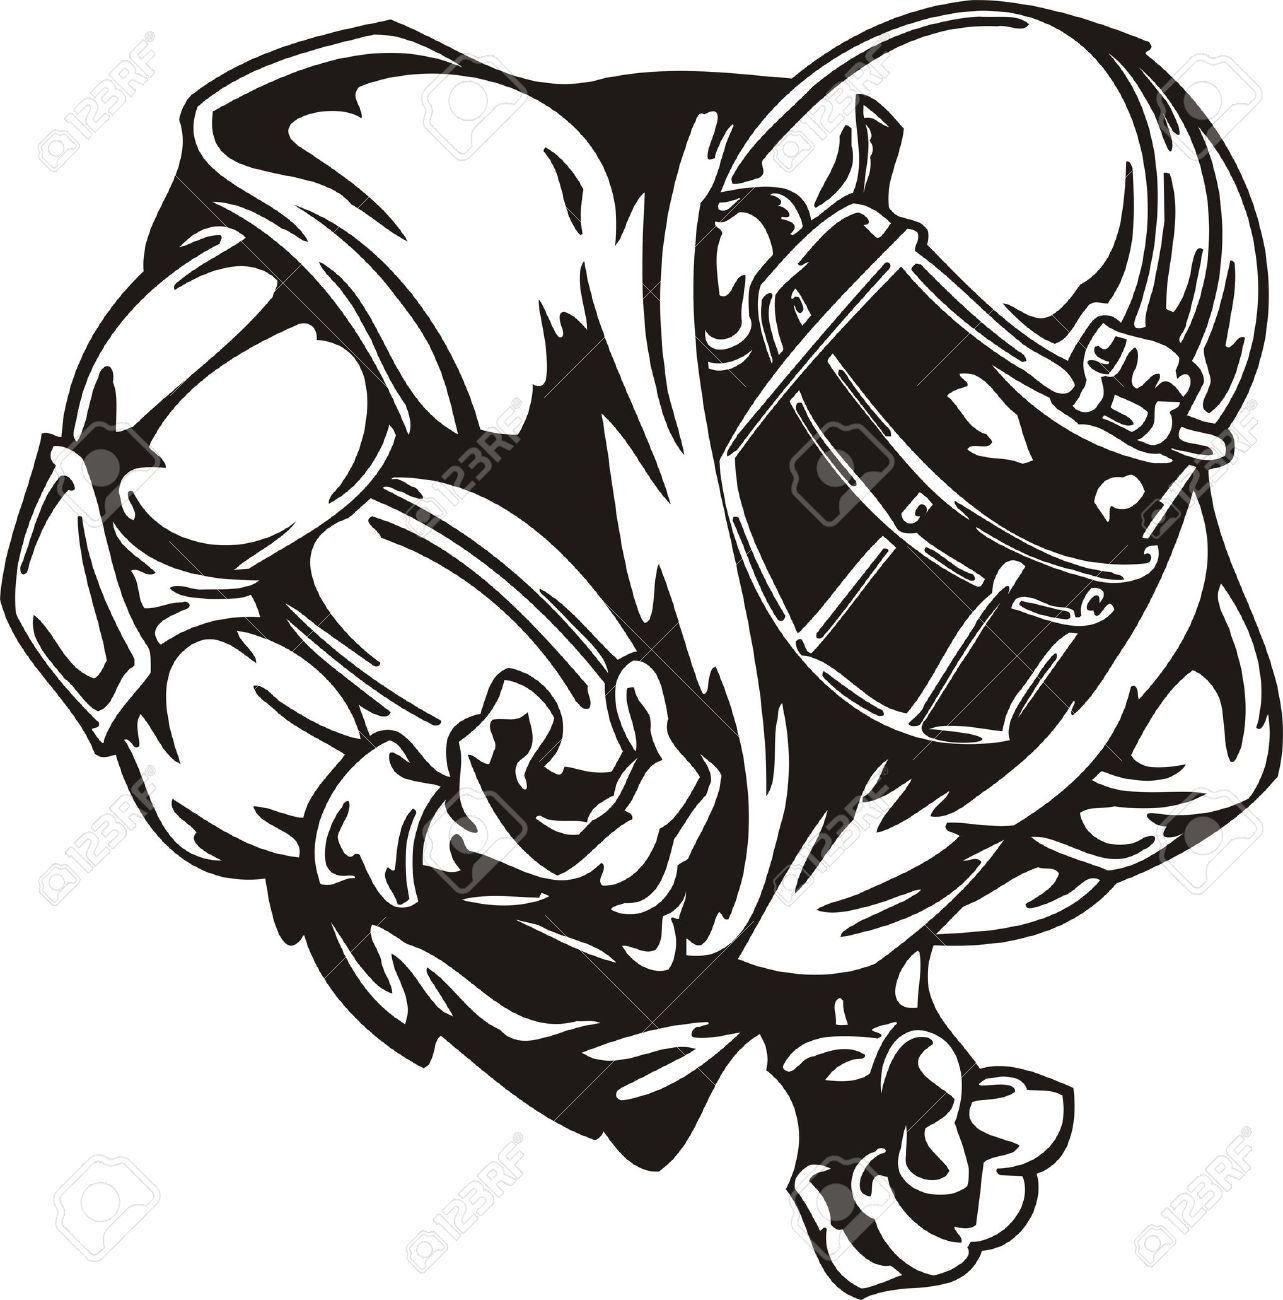 1283x1300 Football Player Tackling Clipart